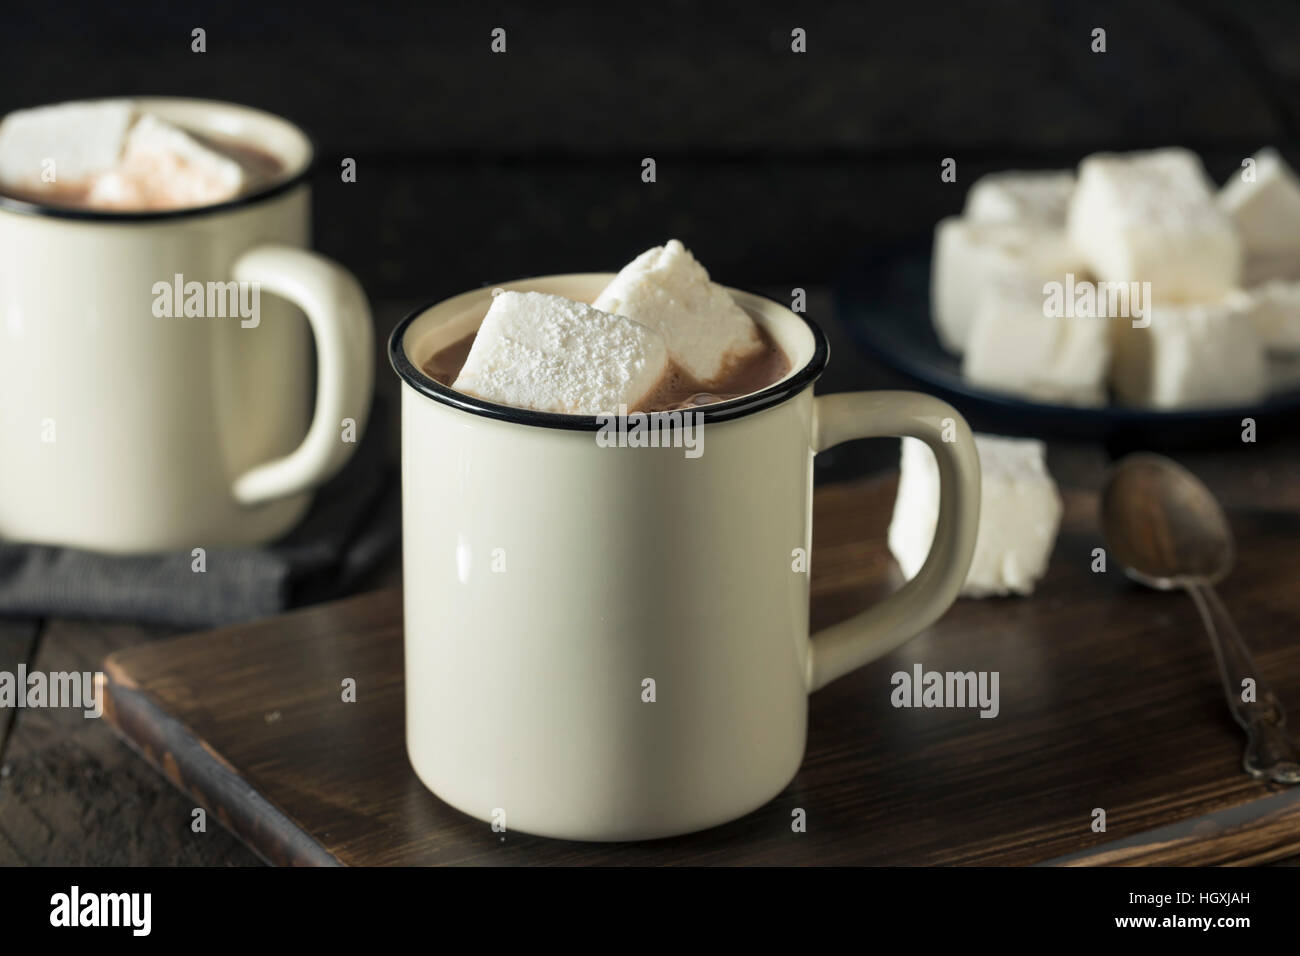 Warm Hot Chocolate with Square Marshmallows in a Mug - Stock Image